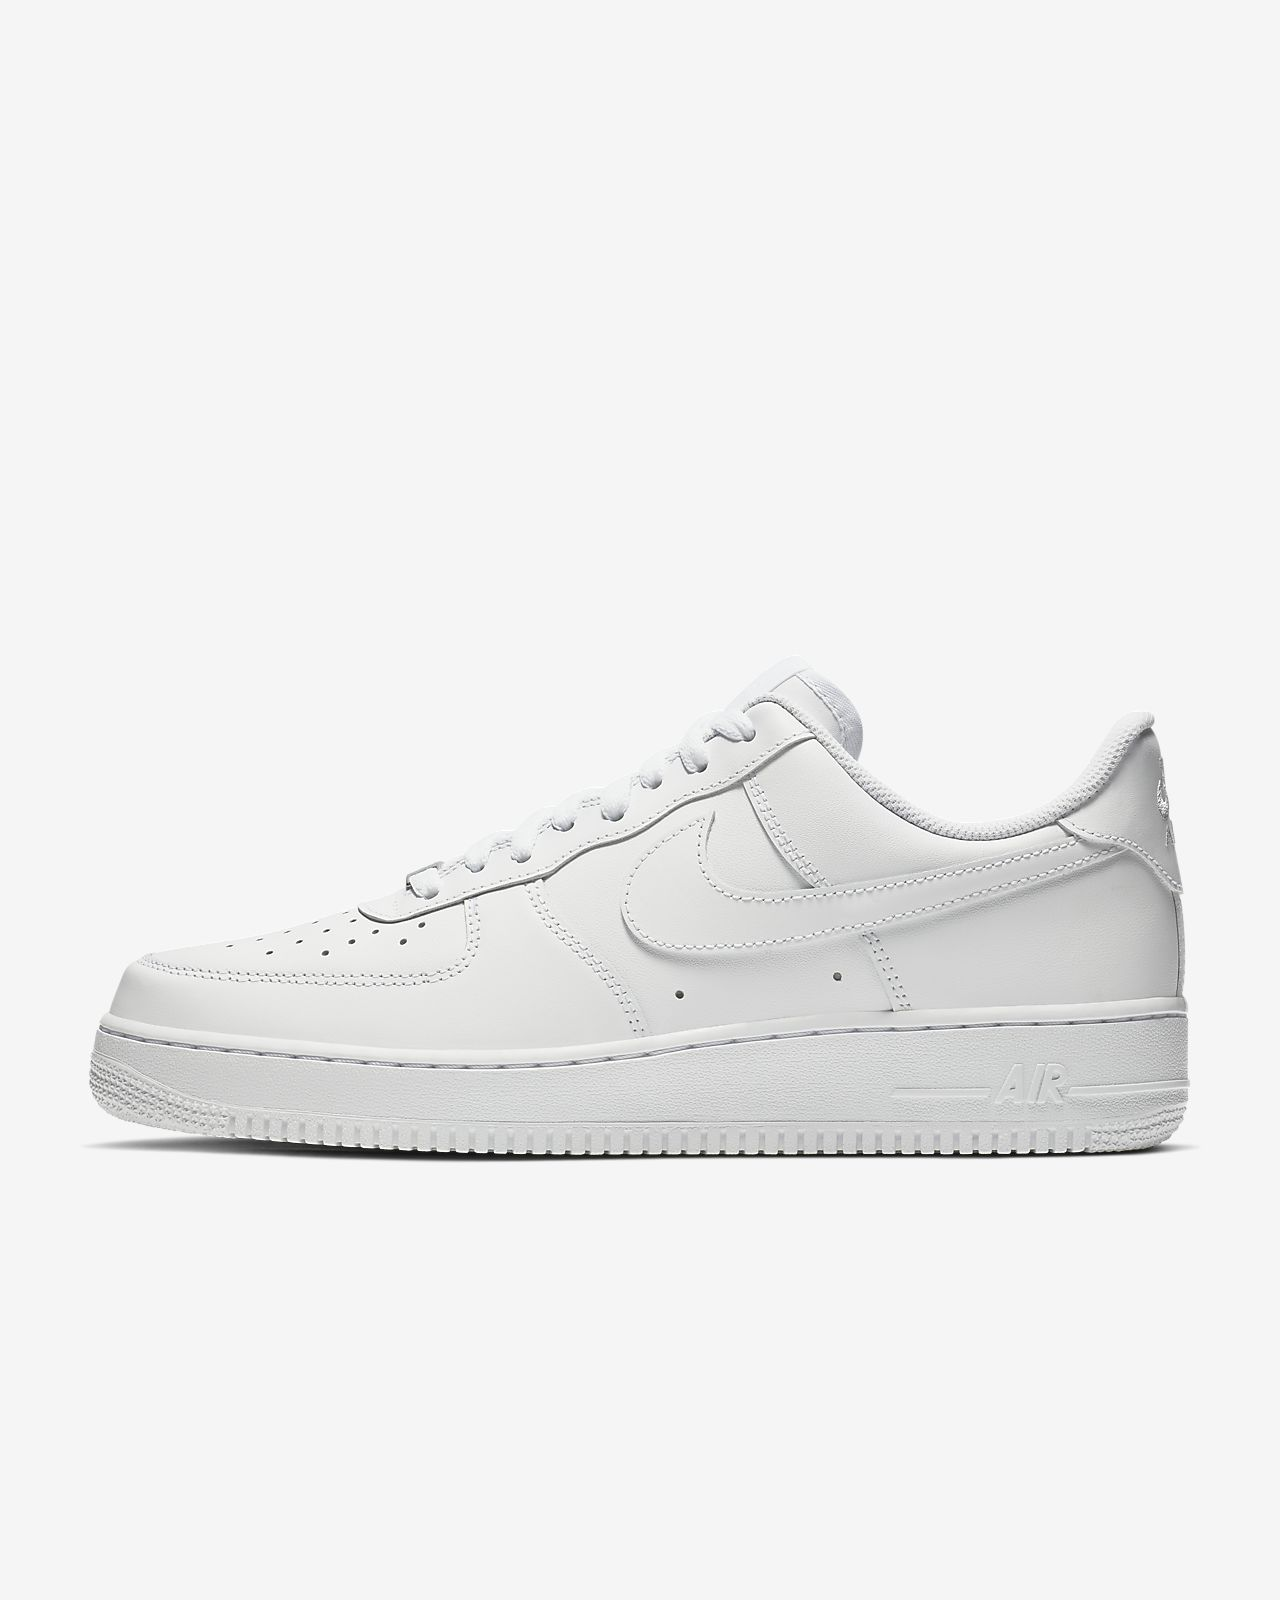 100% authentic 92570 e676e ... Sko Nike Air Force 1  07